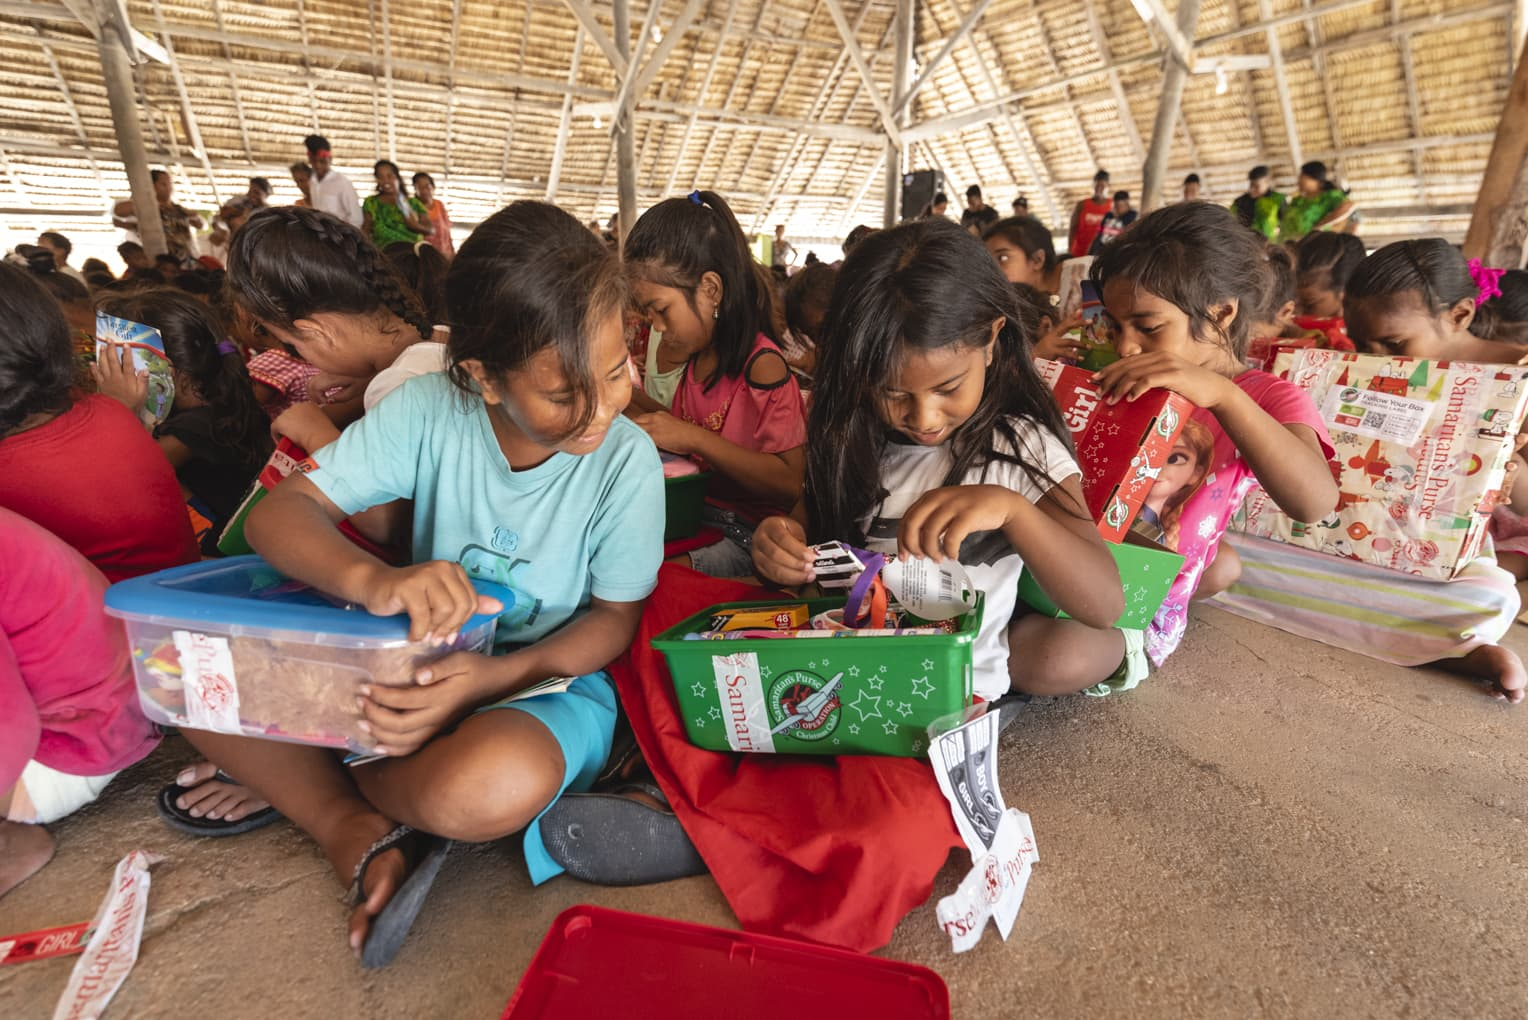 This distribution was part of an initiative to deliver gift-filled shoeboxes to every child on 1,000 Pacific islands over the next five years.